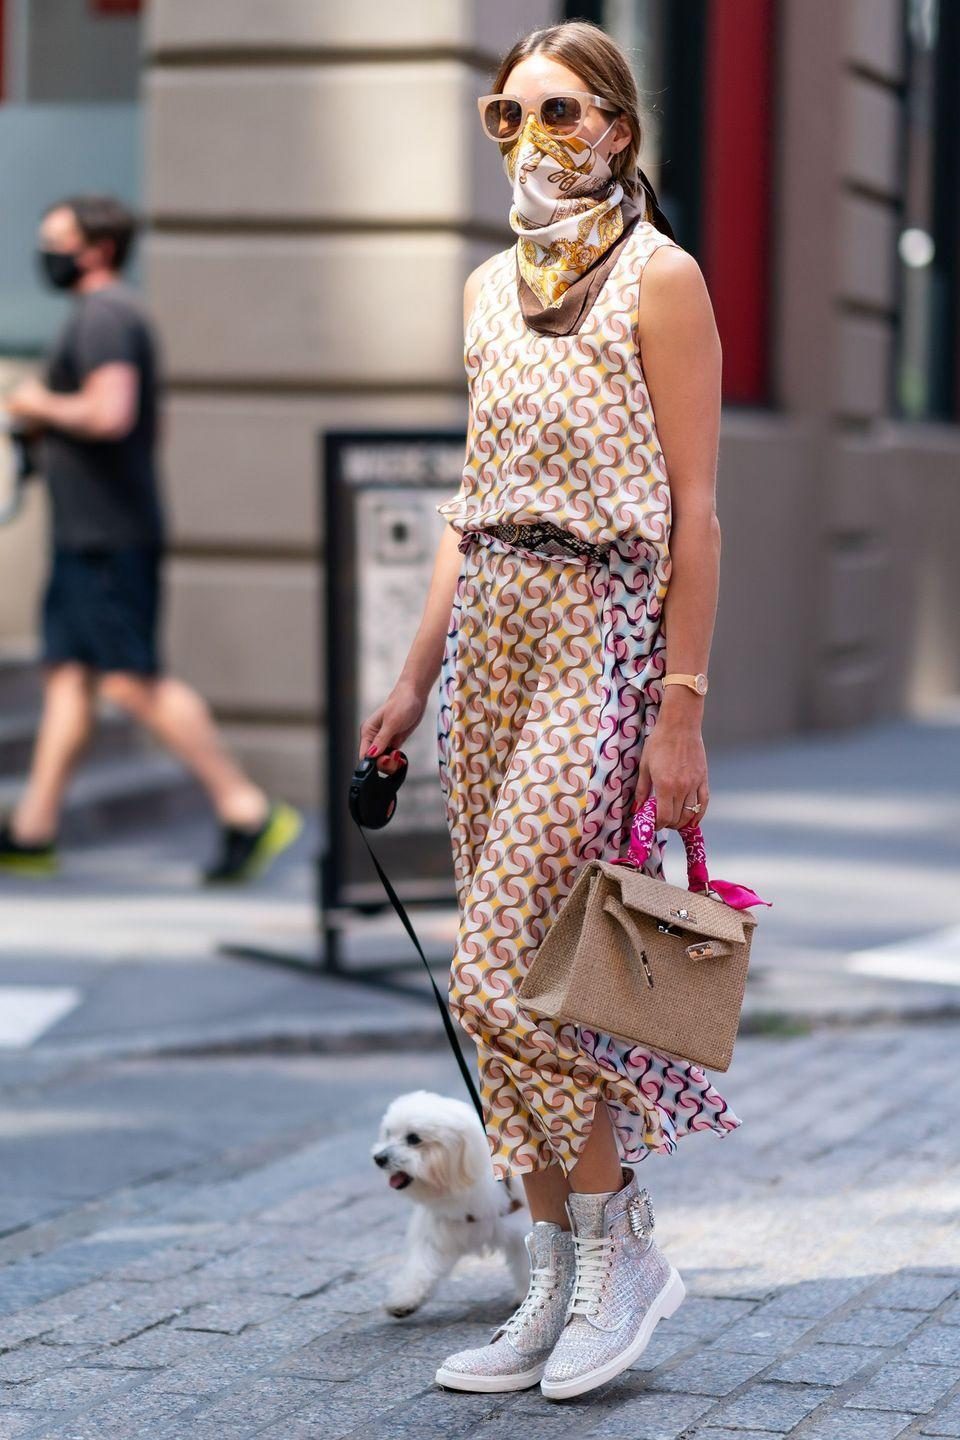 <p><strong>15 July </strong>Olivia Palermo was seen walking her dog in New York wearing a patterned ensemble with a co-ordinated face covering.</p>